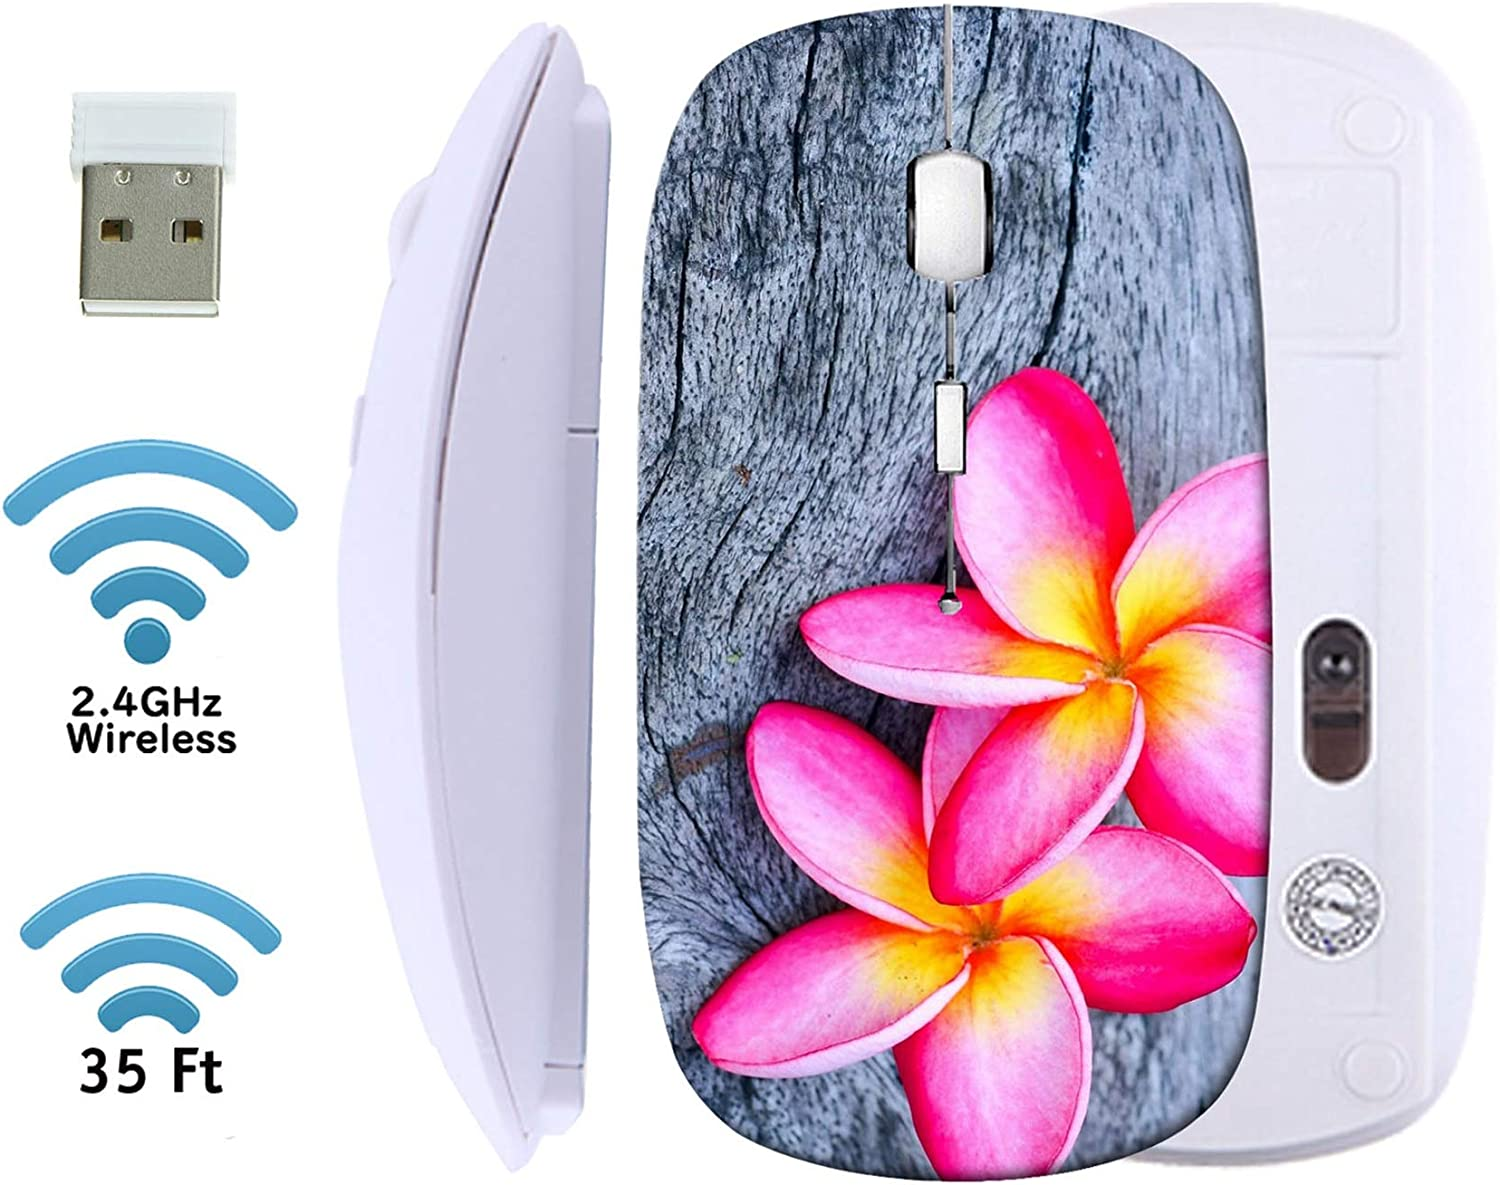 MSD Wireless Mouse White Base Travel 2.4G Wireless Mice with USB Receiver, Noiseless and Silent Click with 1000 DPI for Notebook, pc, Laptop, Computer, mac Book, Plumeria Beautiful Pink Inflorescence